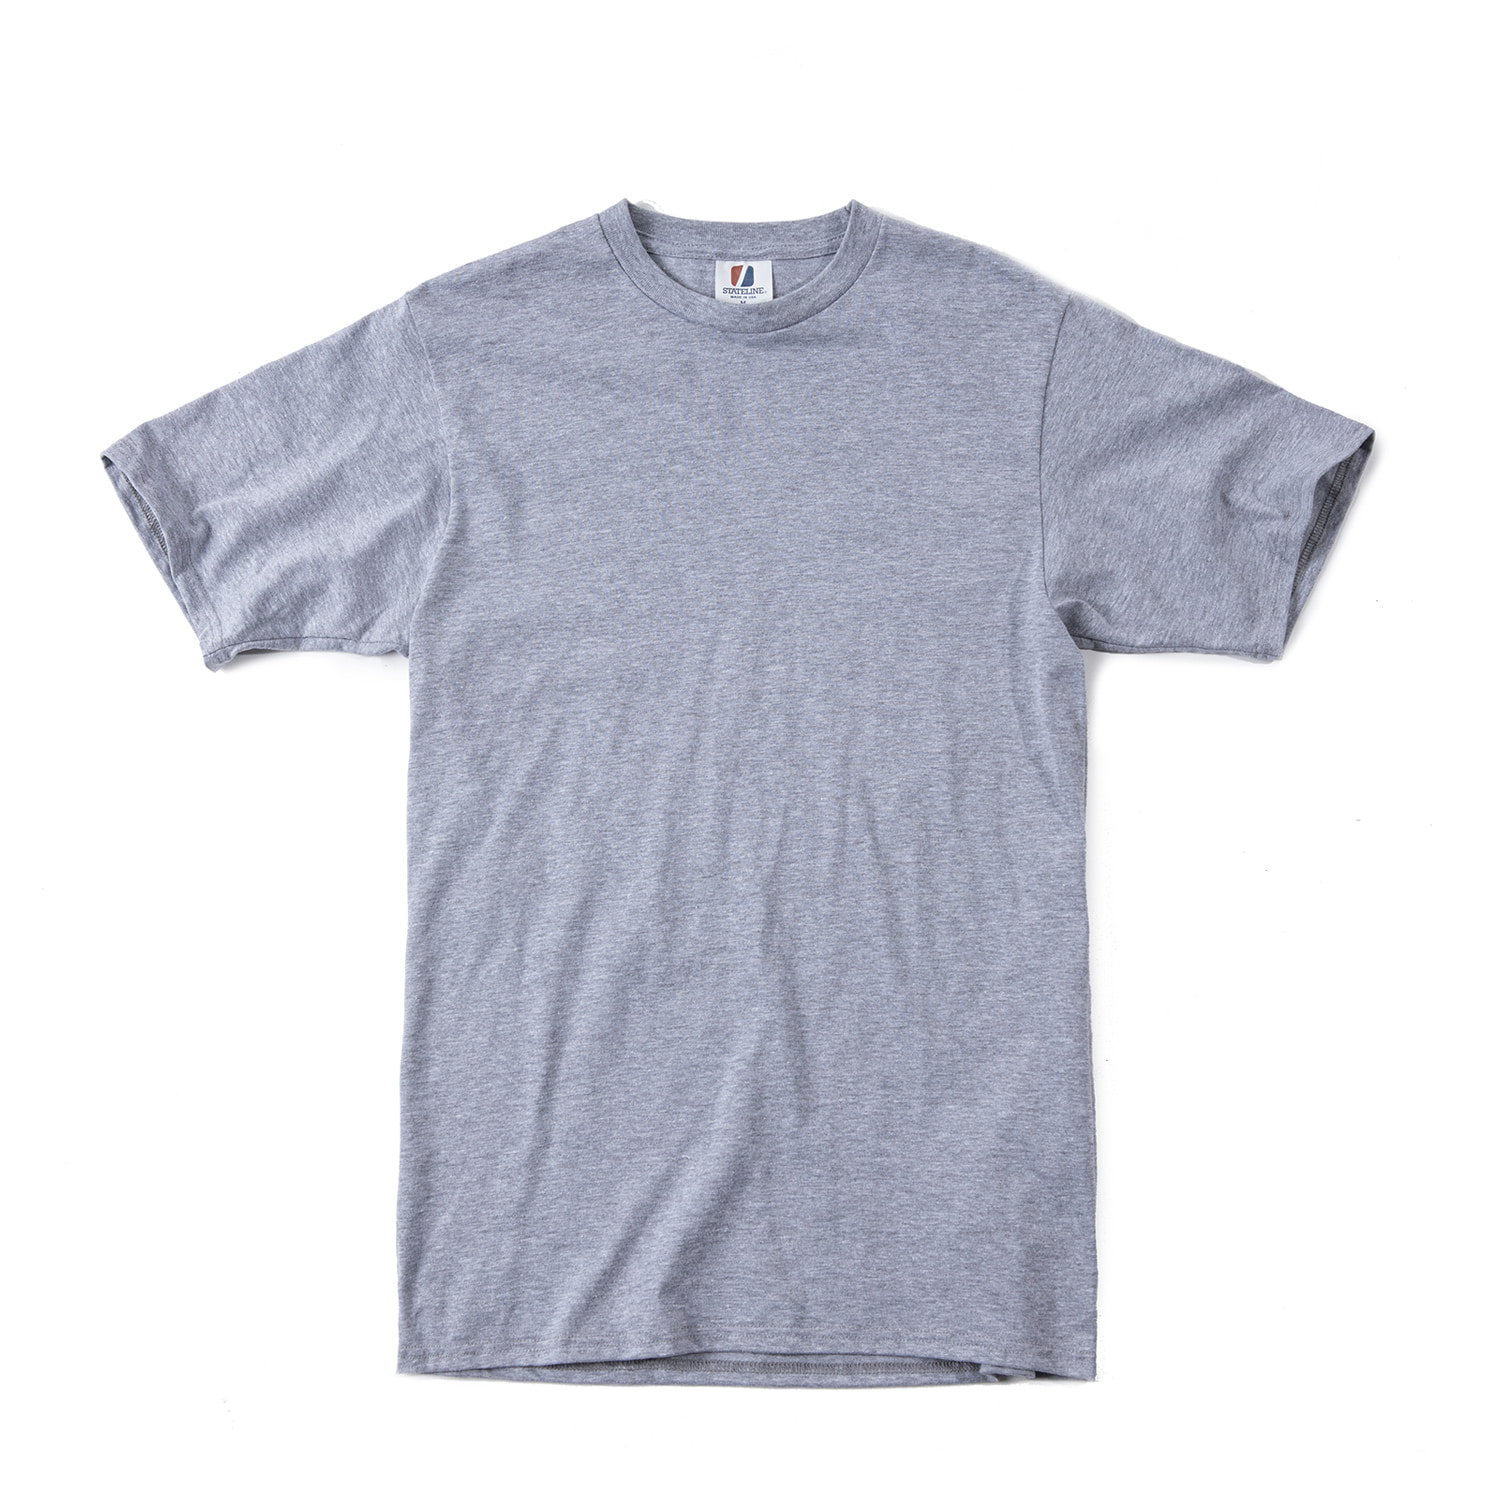 "Jersey S/S Tee ""HETHER GREY"""